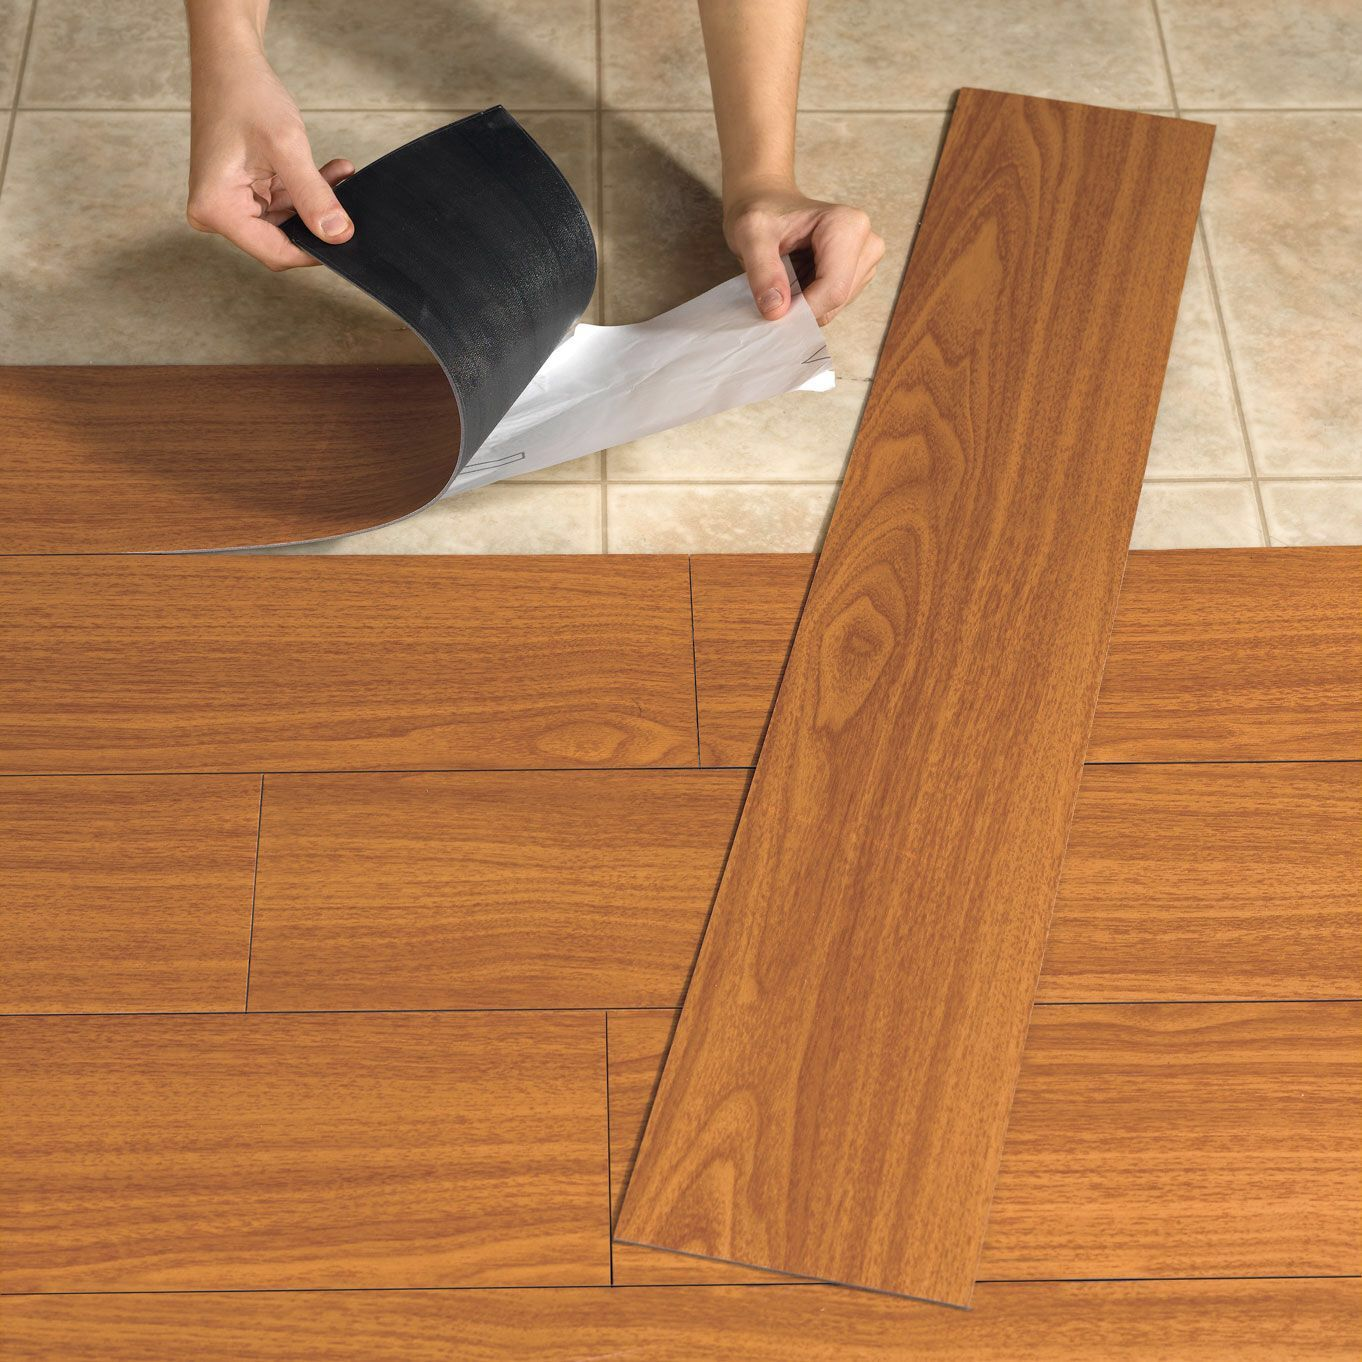 37 Rv Hacks That Will Make You A Happy Camper Peel And Stick Wood Plank Flooring Flooring